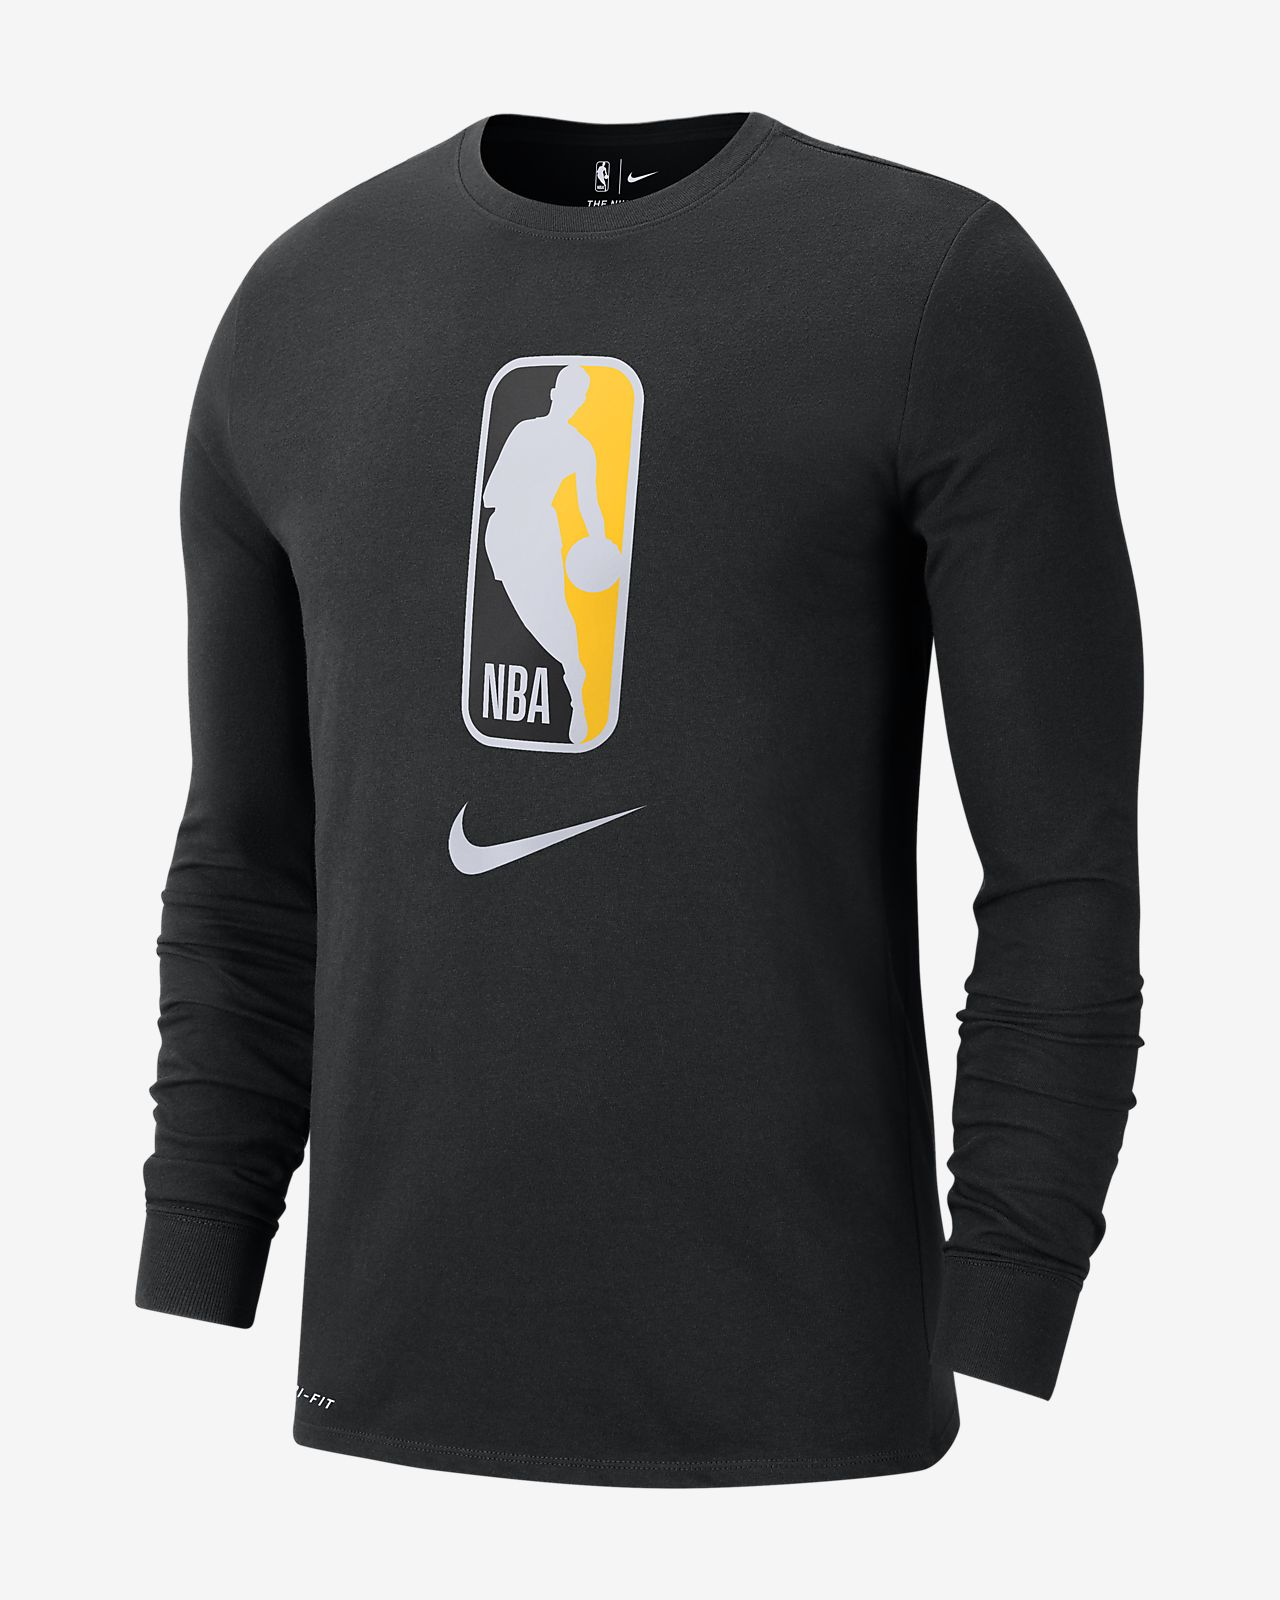 Nike Dri-FIT Men's Long-Sleeve NBA T-Shirt